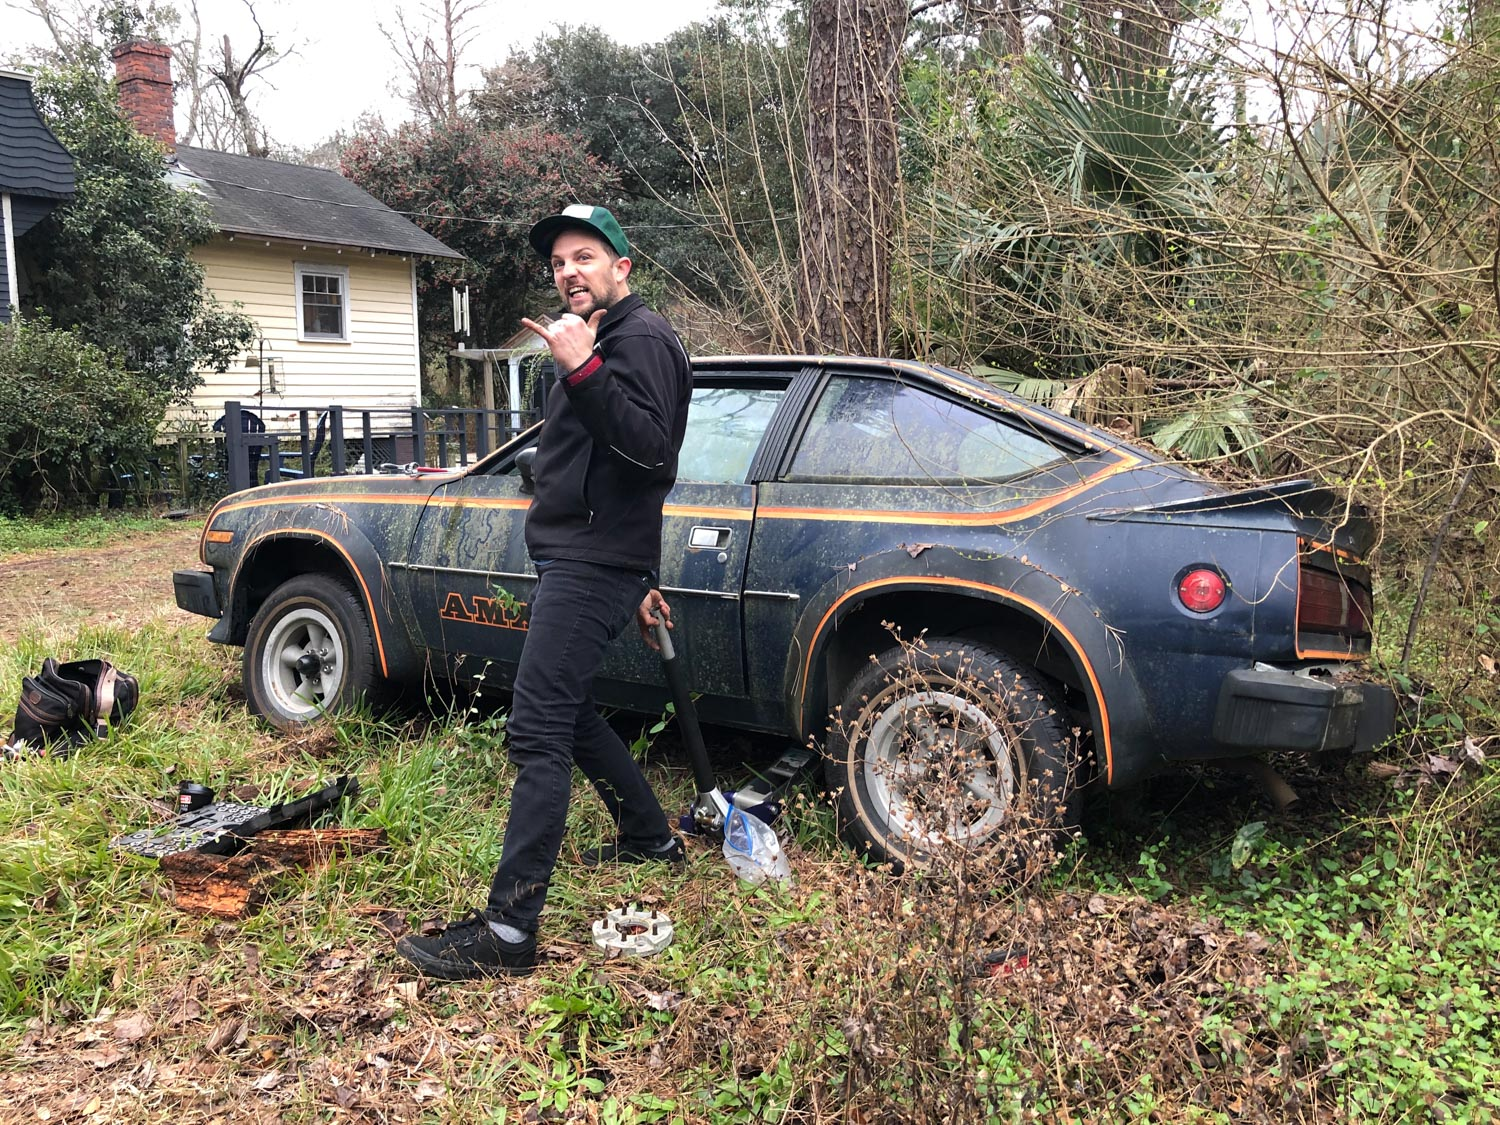 derelict amc amx on two wheels